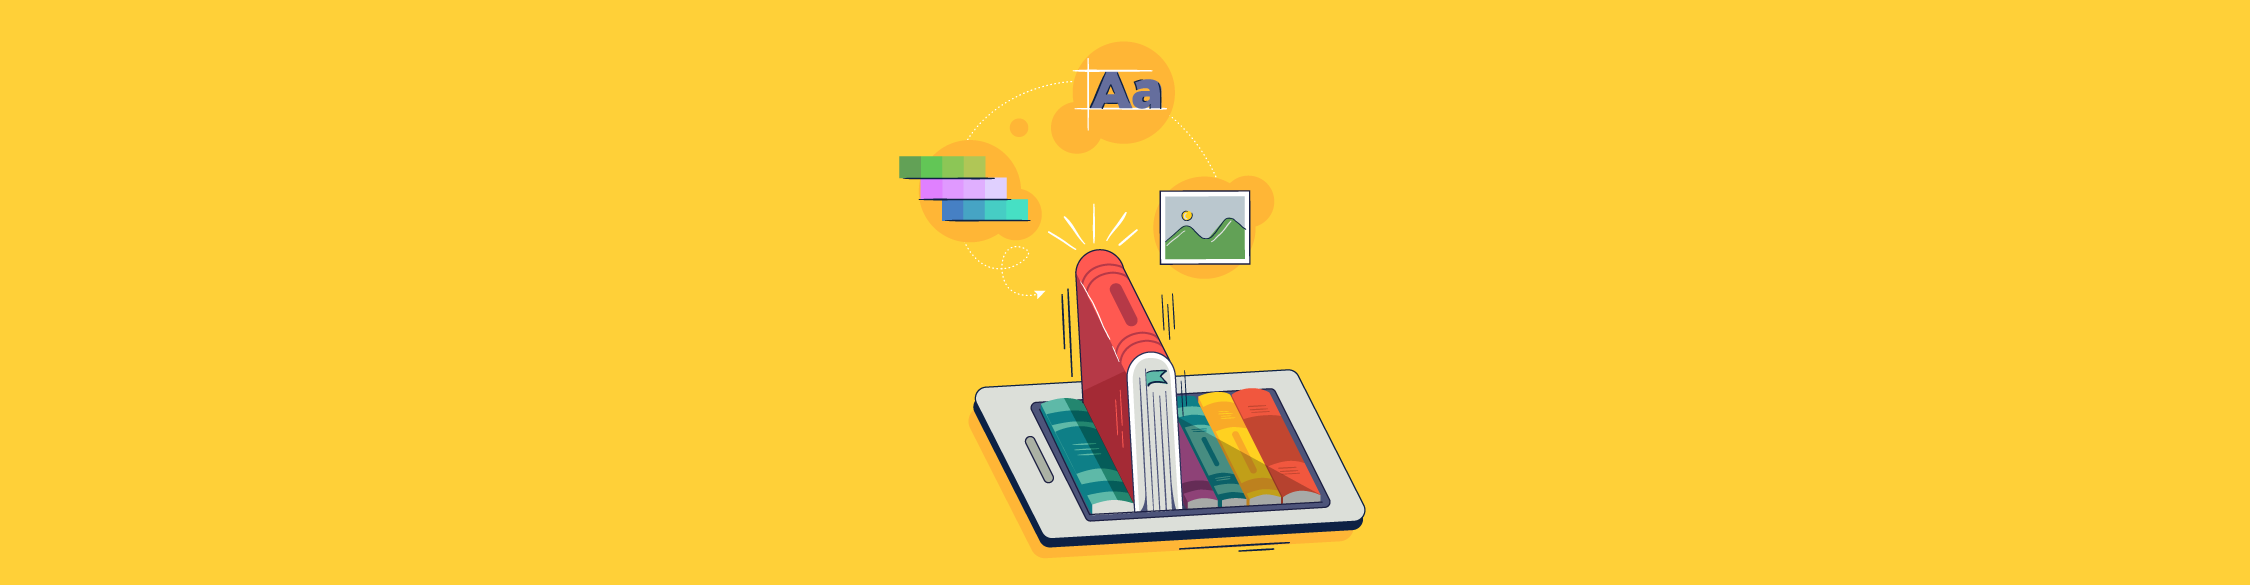 An illustration of a book popping off of an iPad with design elements floating around it.